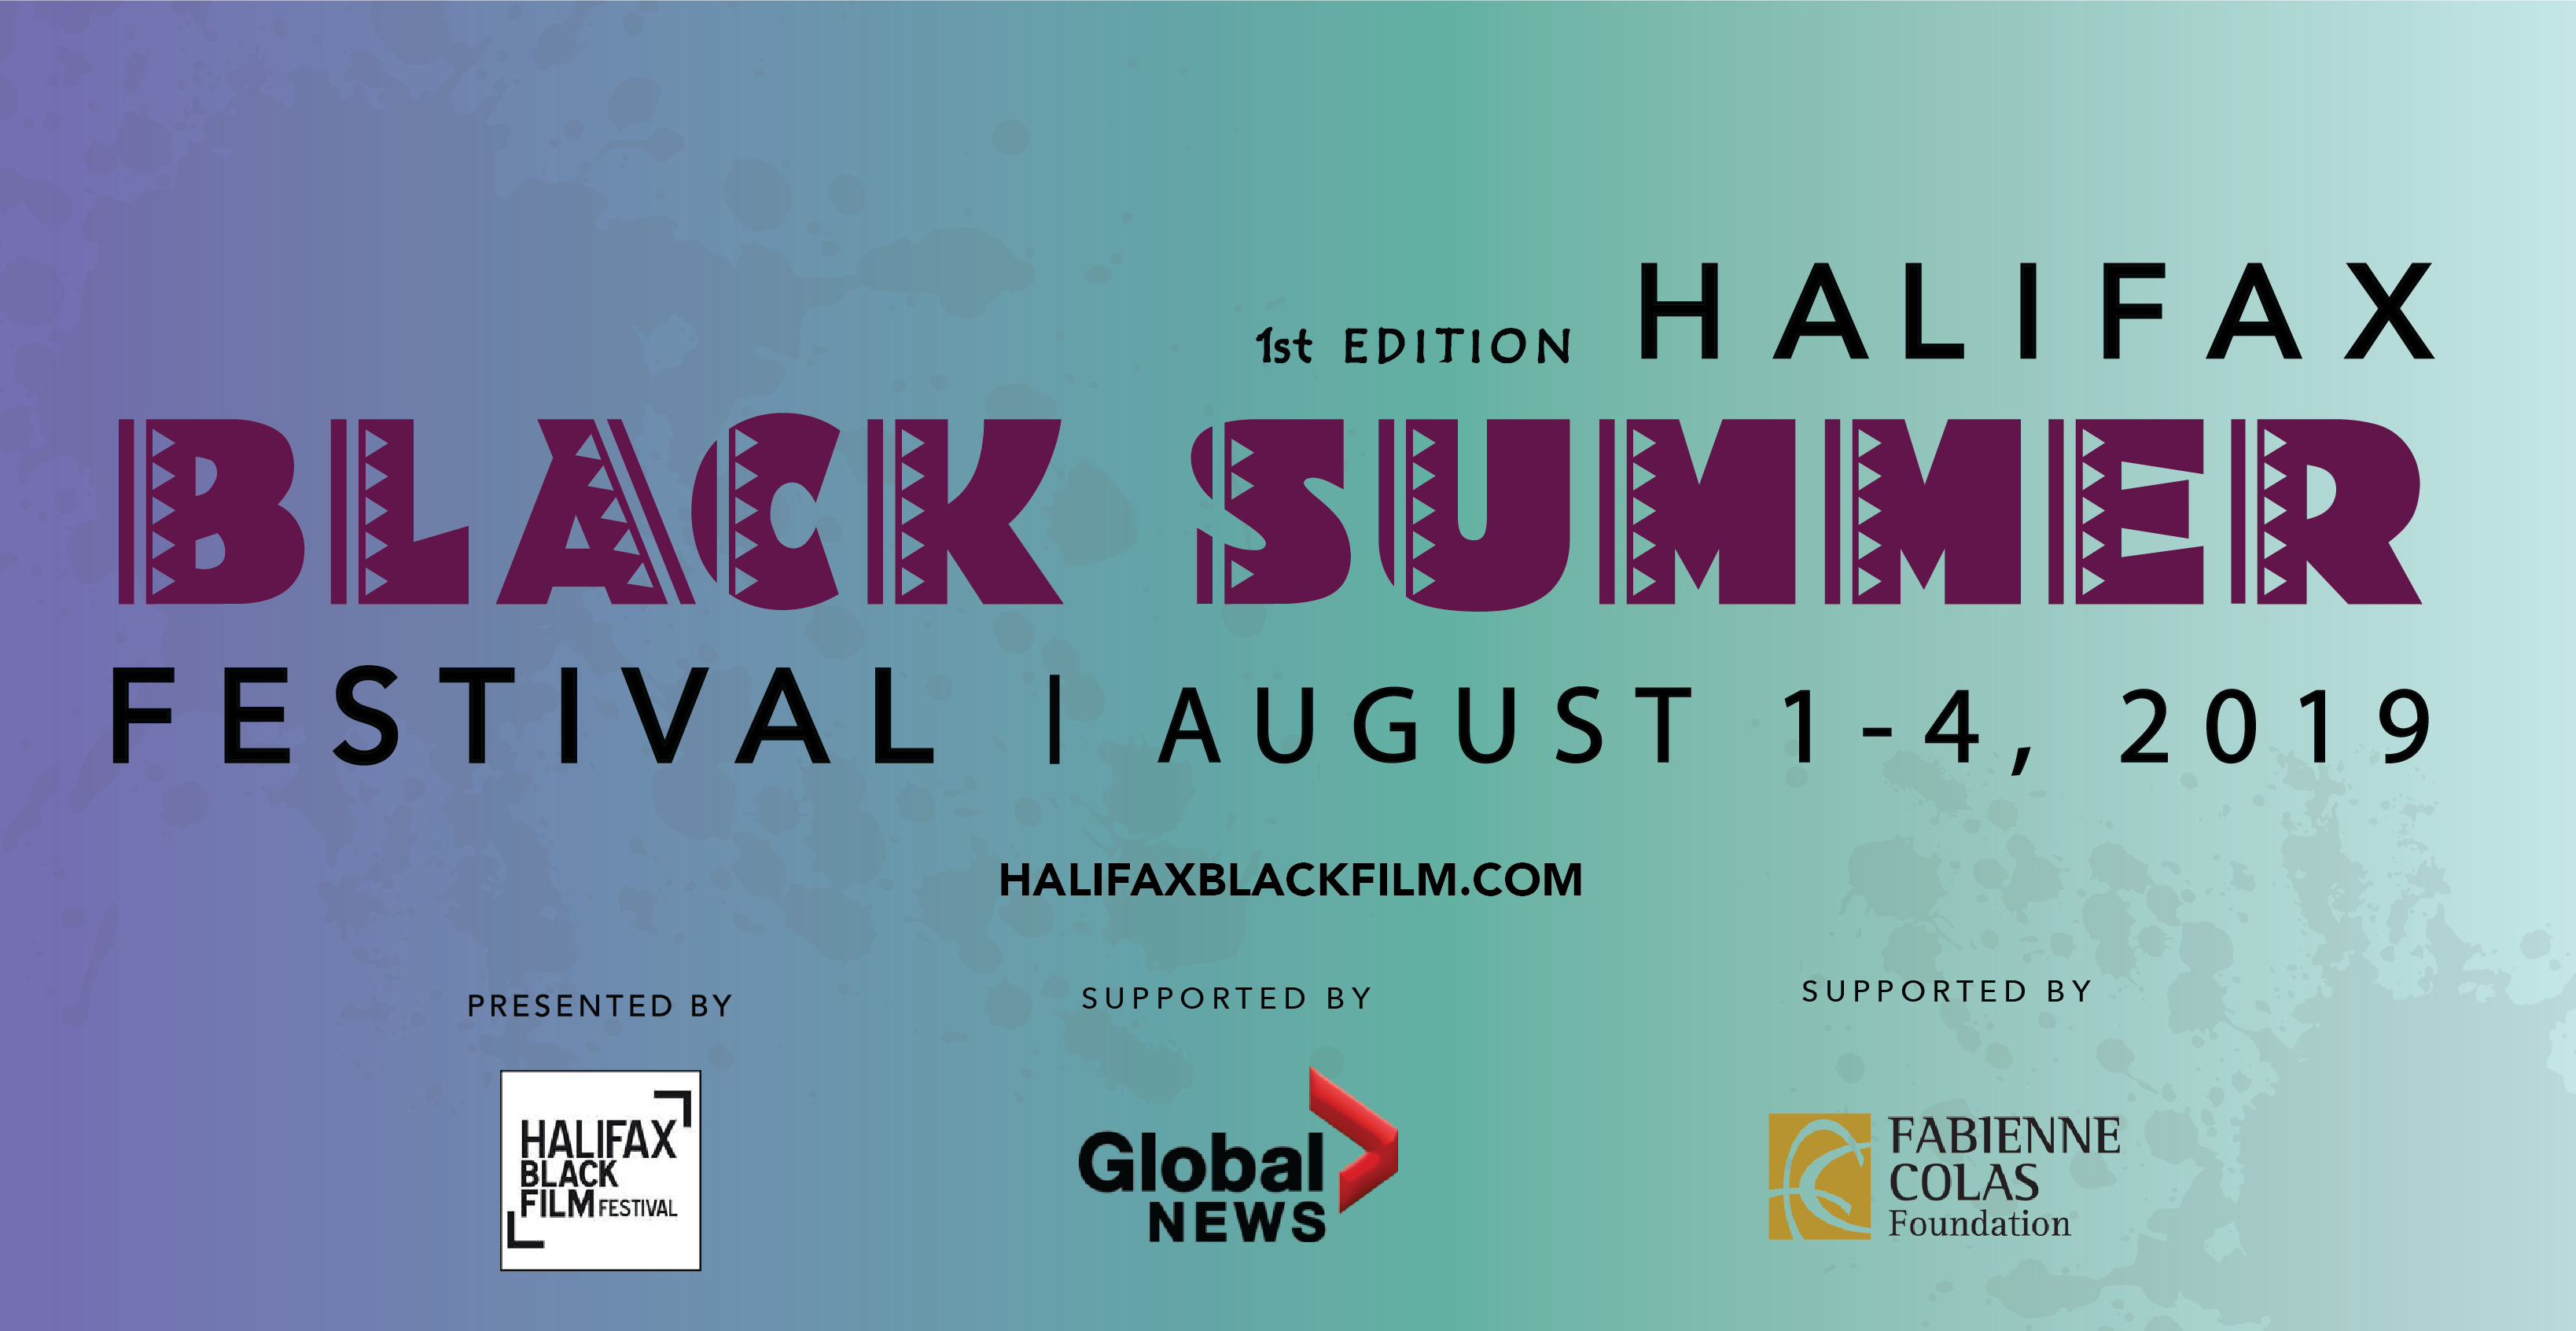 Introducing the HALIFAX BLACK SUMMER FESTIVAL (HBSF)